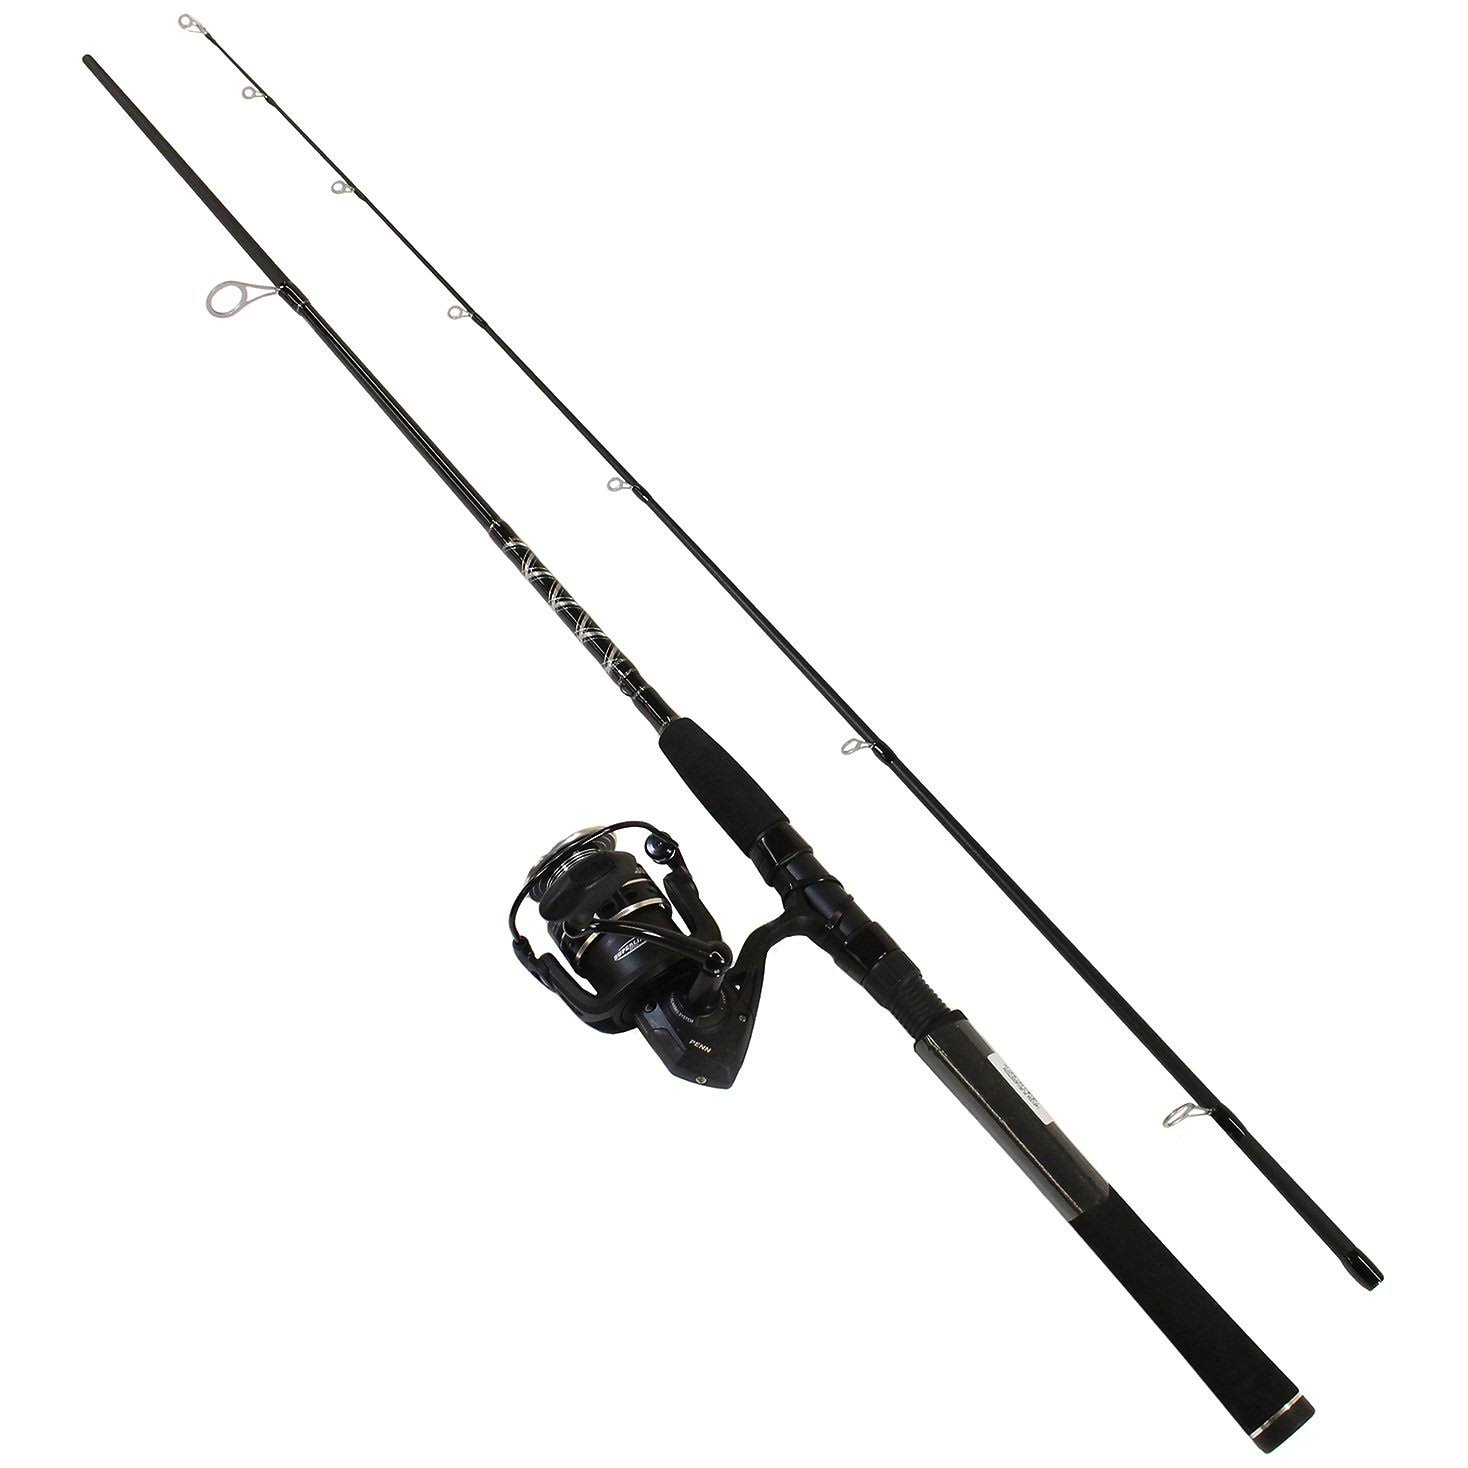 Penn Pursuit III Spinning Combo - PURIII4000702M